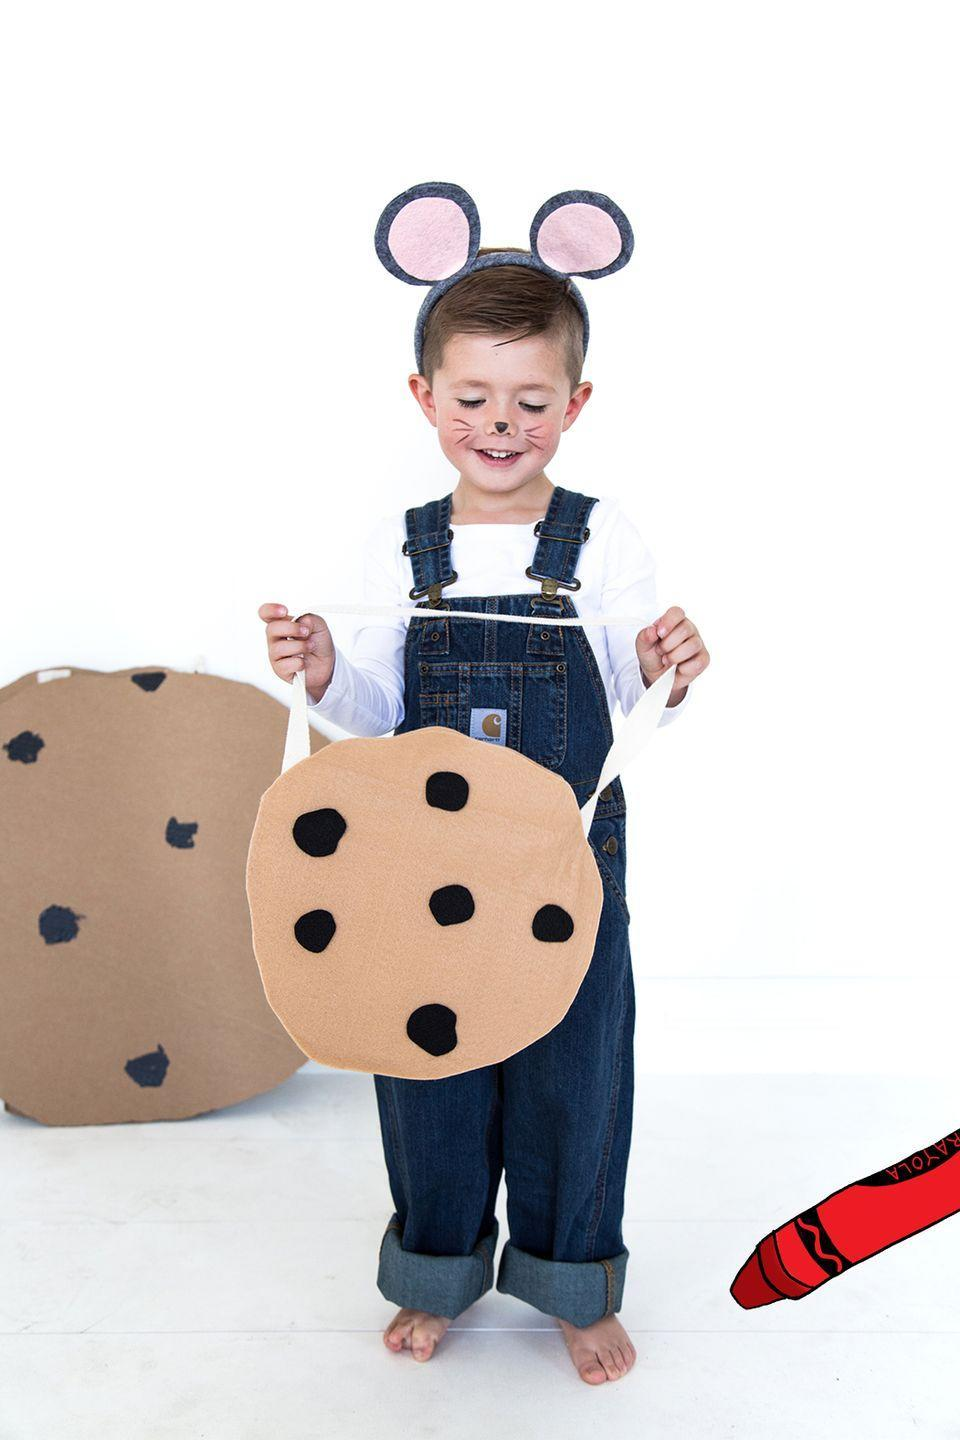 "<p>Your child will be the cutest mouse on the block. Pro tip: Stash a few <em>real </em>cookies into your kid's cookie-shaped bag for a yummy Halloween surprise!</p><p><strong><a class=""link rapid-noclick-resp"" href=""https://www.amazon.com/Mouse-Ears-Tail-Set-Children/dp/B004MLBAQG?tag=syn-yahoo-20&ascsubtag=%5Bartid%7C10055.g.22127013%5Bsrc%7Cyahoo-us"" rel=""nofollow noopener"" target=""_blank"" data-ylk=""slk:Shop mouse ears"">Shop mouse ears</a></strong></p><p><em><a href=""http://thehousethatlarsbuilt.com/2015/10/if-you-give-a-mouse-a-cookie-costumes.html/"" rel=""nofollow noopener"" target=""_blank"" data-ylk=""slk:Get the tutorial from The House That Lars Built »"" class=""link rapid-noclick-resp"">Get the tutorial from The House That Lars Built »</a></em></p>"